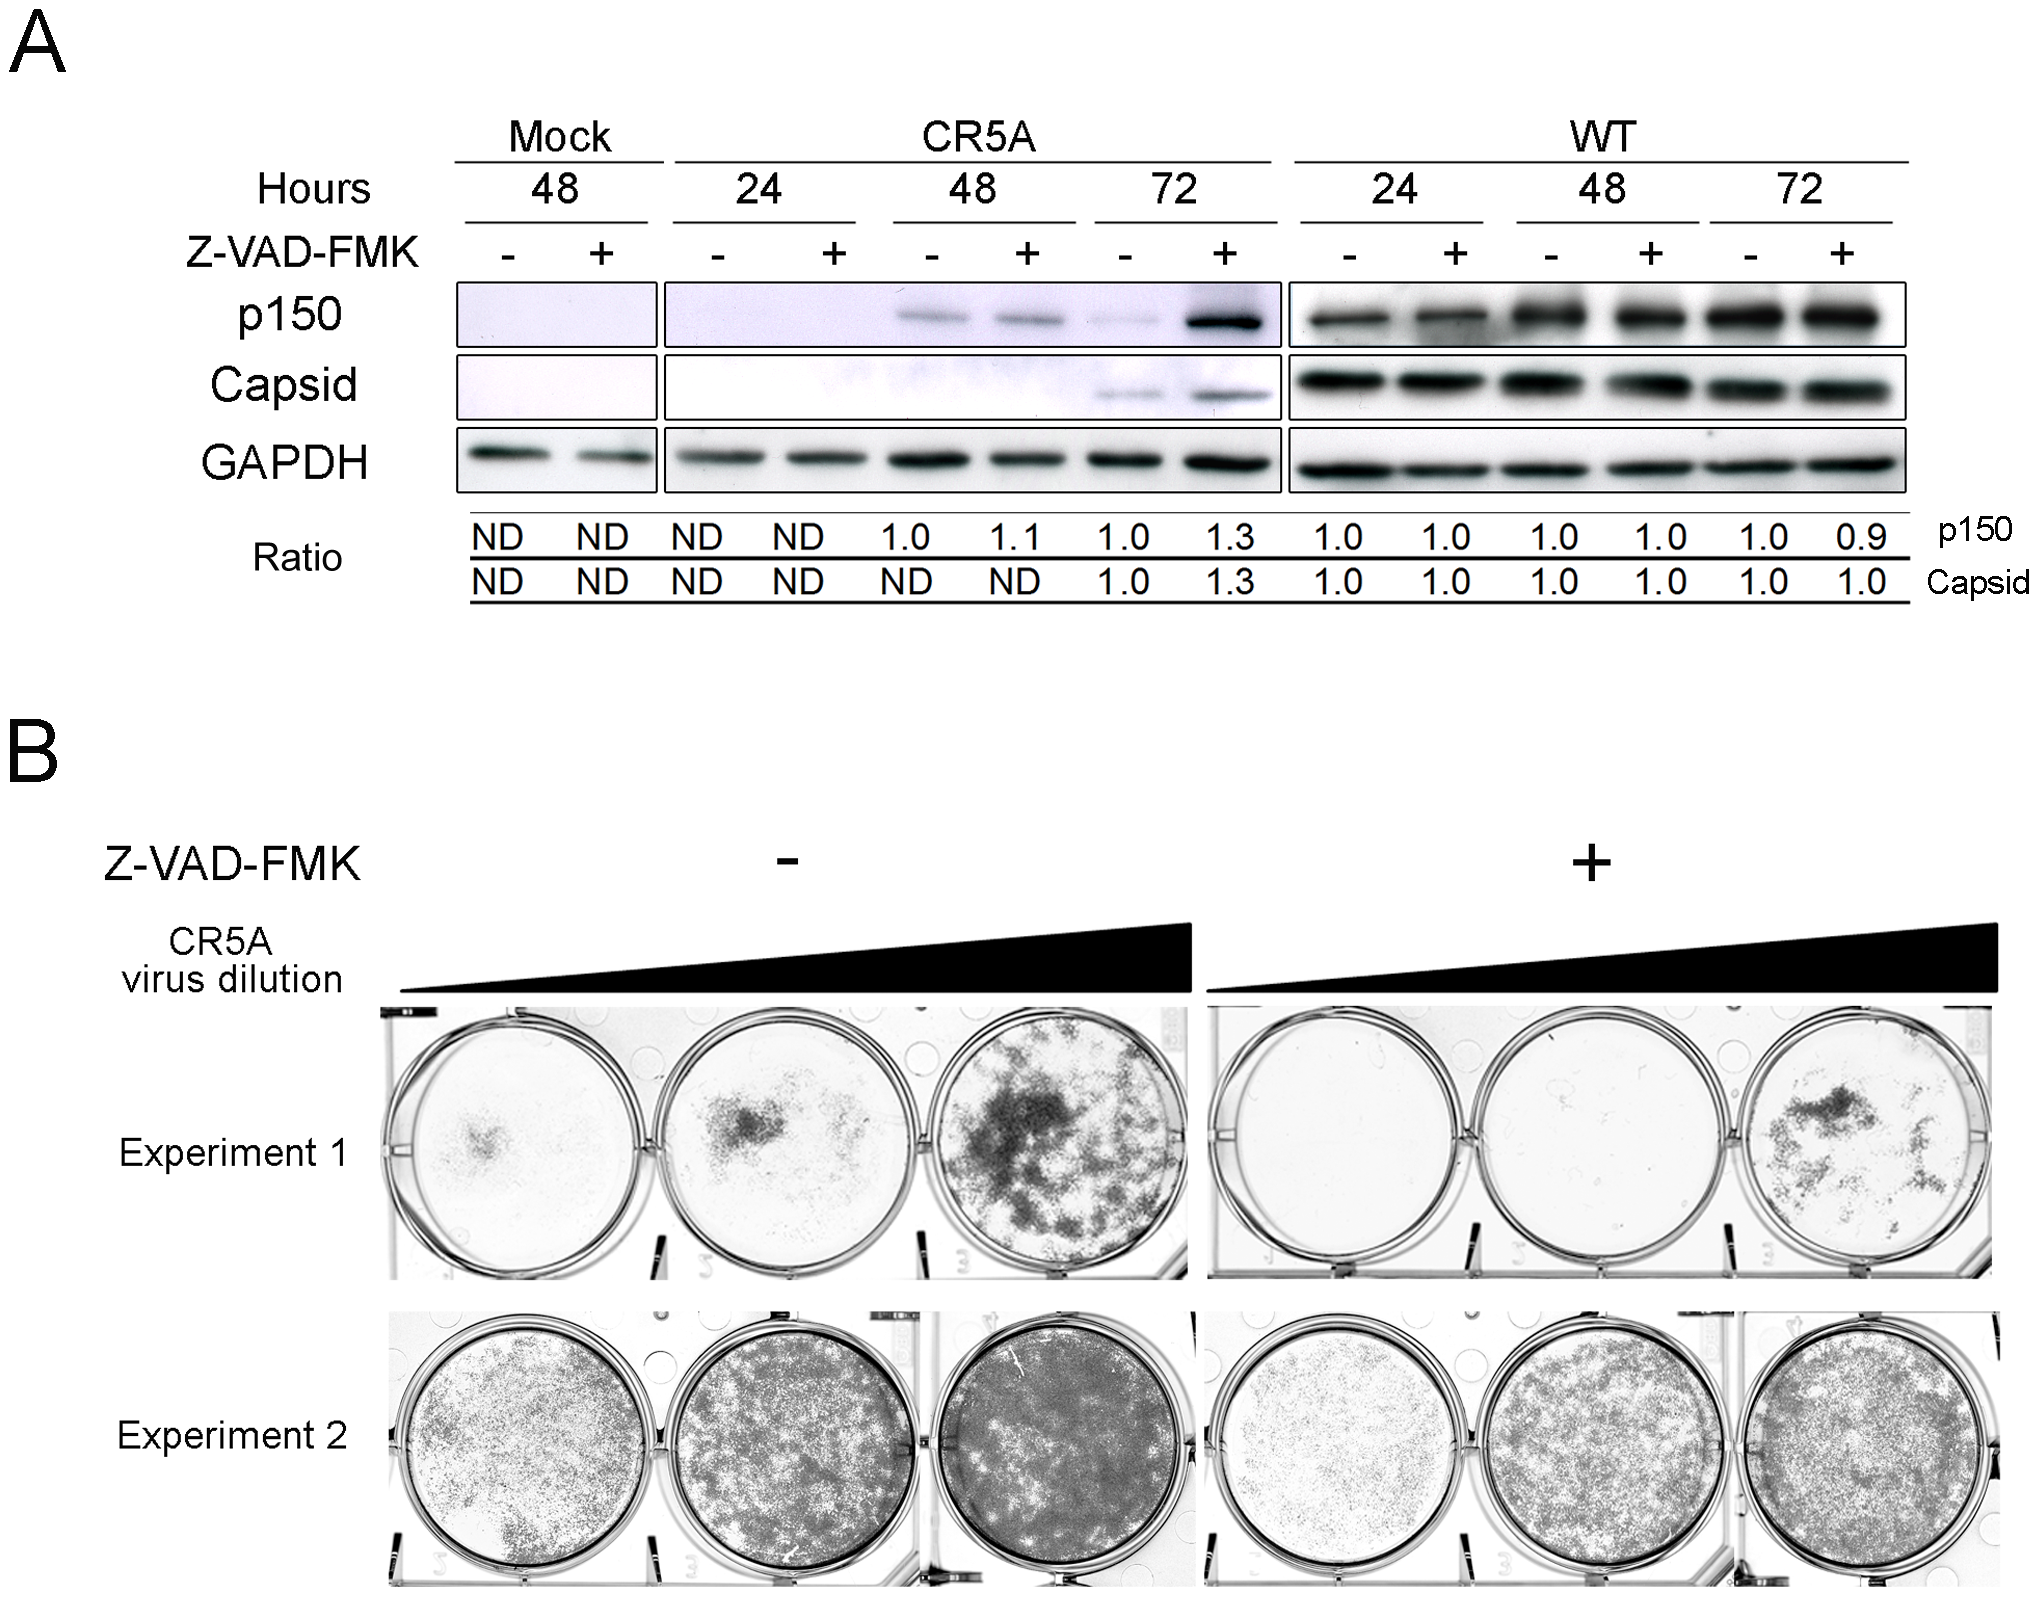 Vero cells that were infected with the CR5A mutant or wild type RV were treated with DMSO (-) or Z-VAD-FMK (50 µM) every day for up to 3 days.